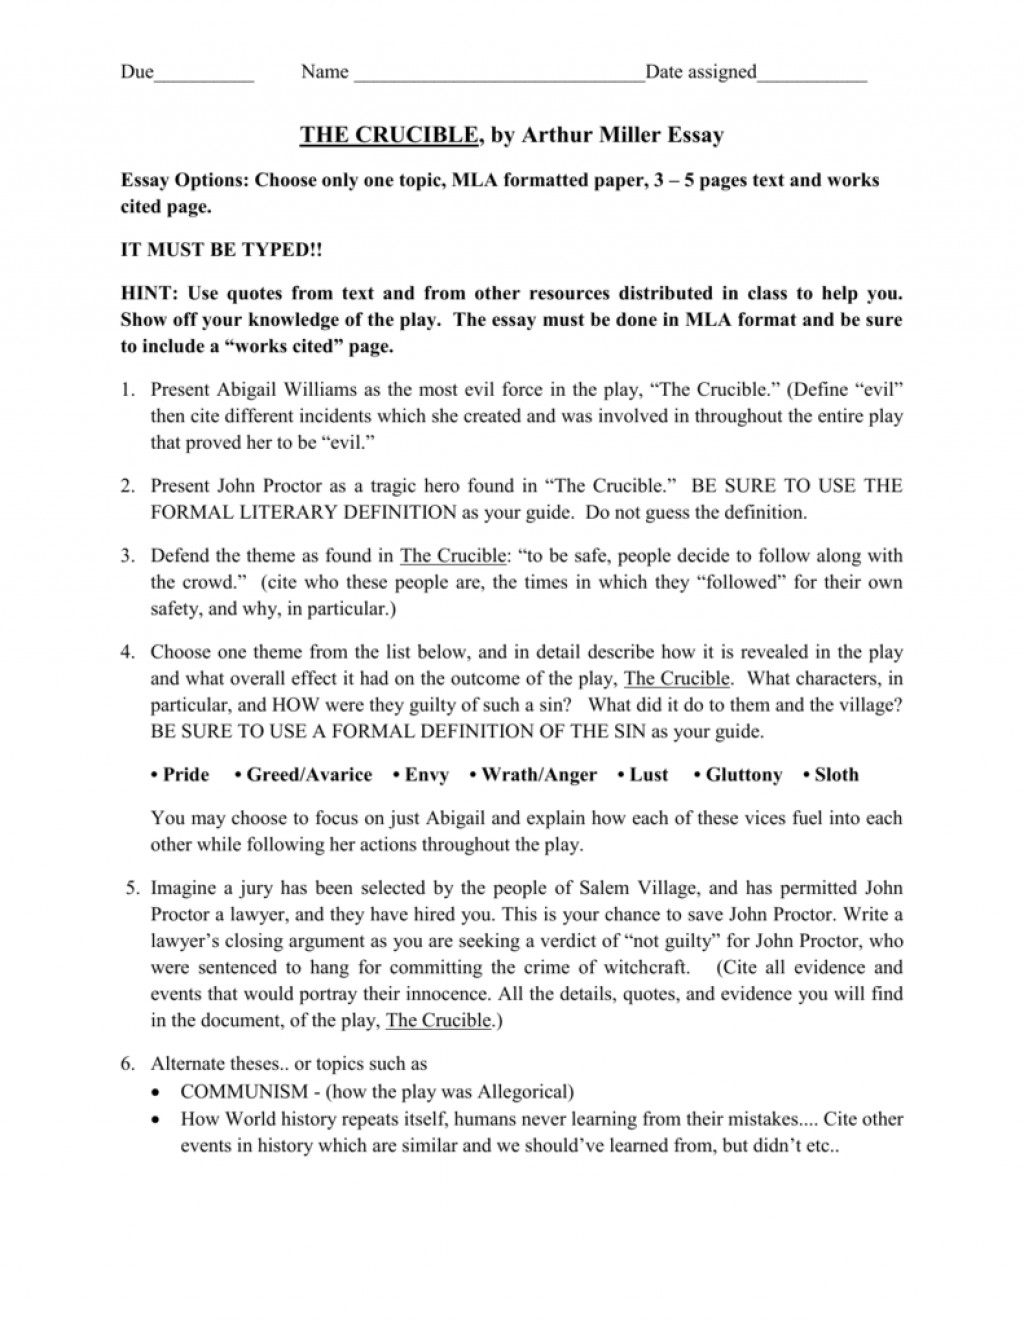 013 Essay Example The Crucible Topics 008038870 1 Shocking Questions Pdf Persuasive Prompts Literature Large